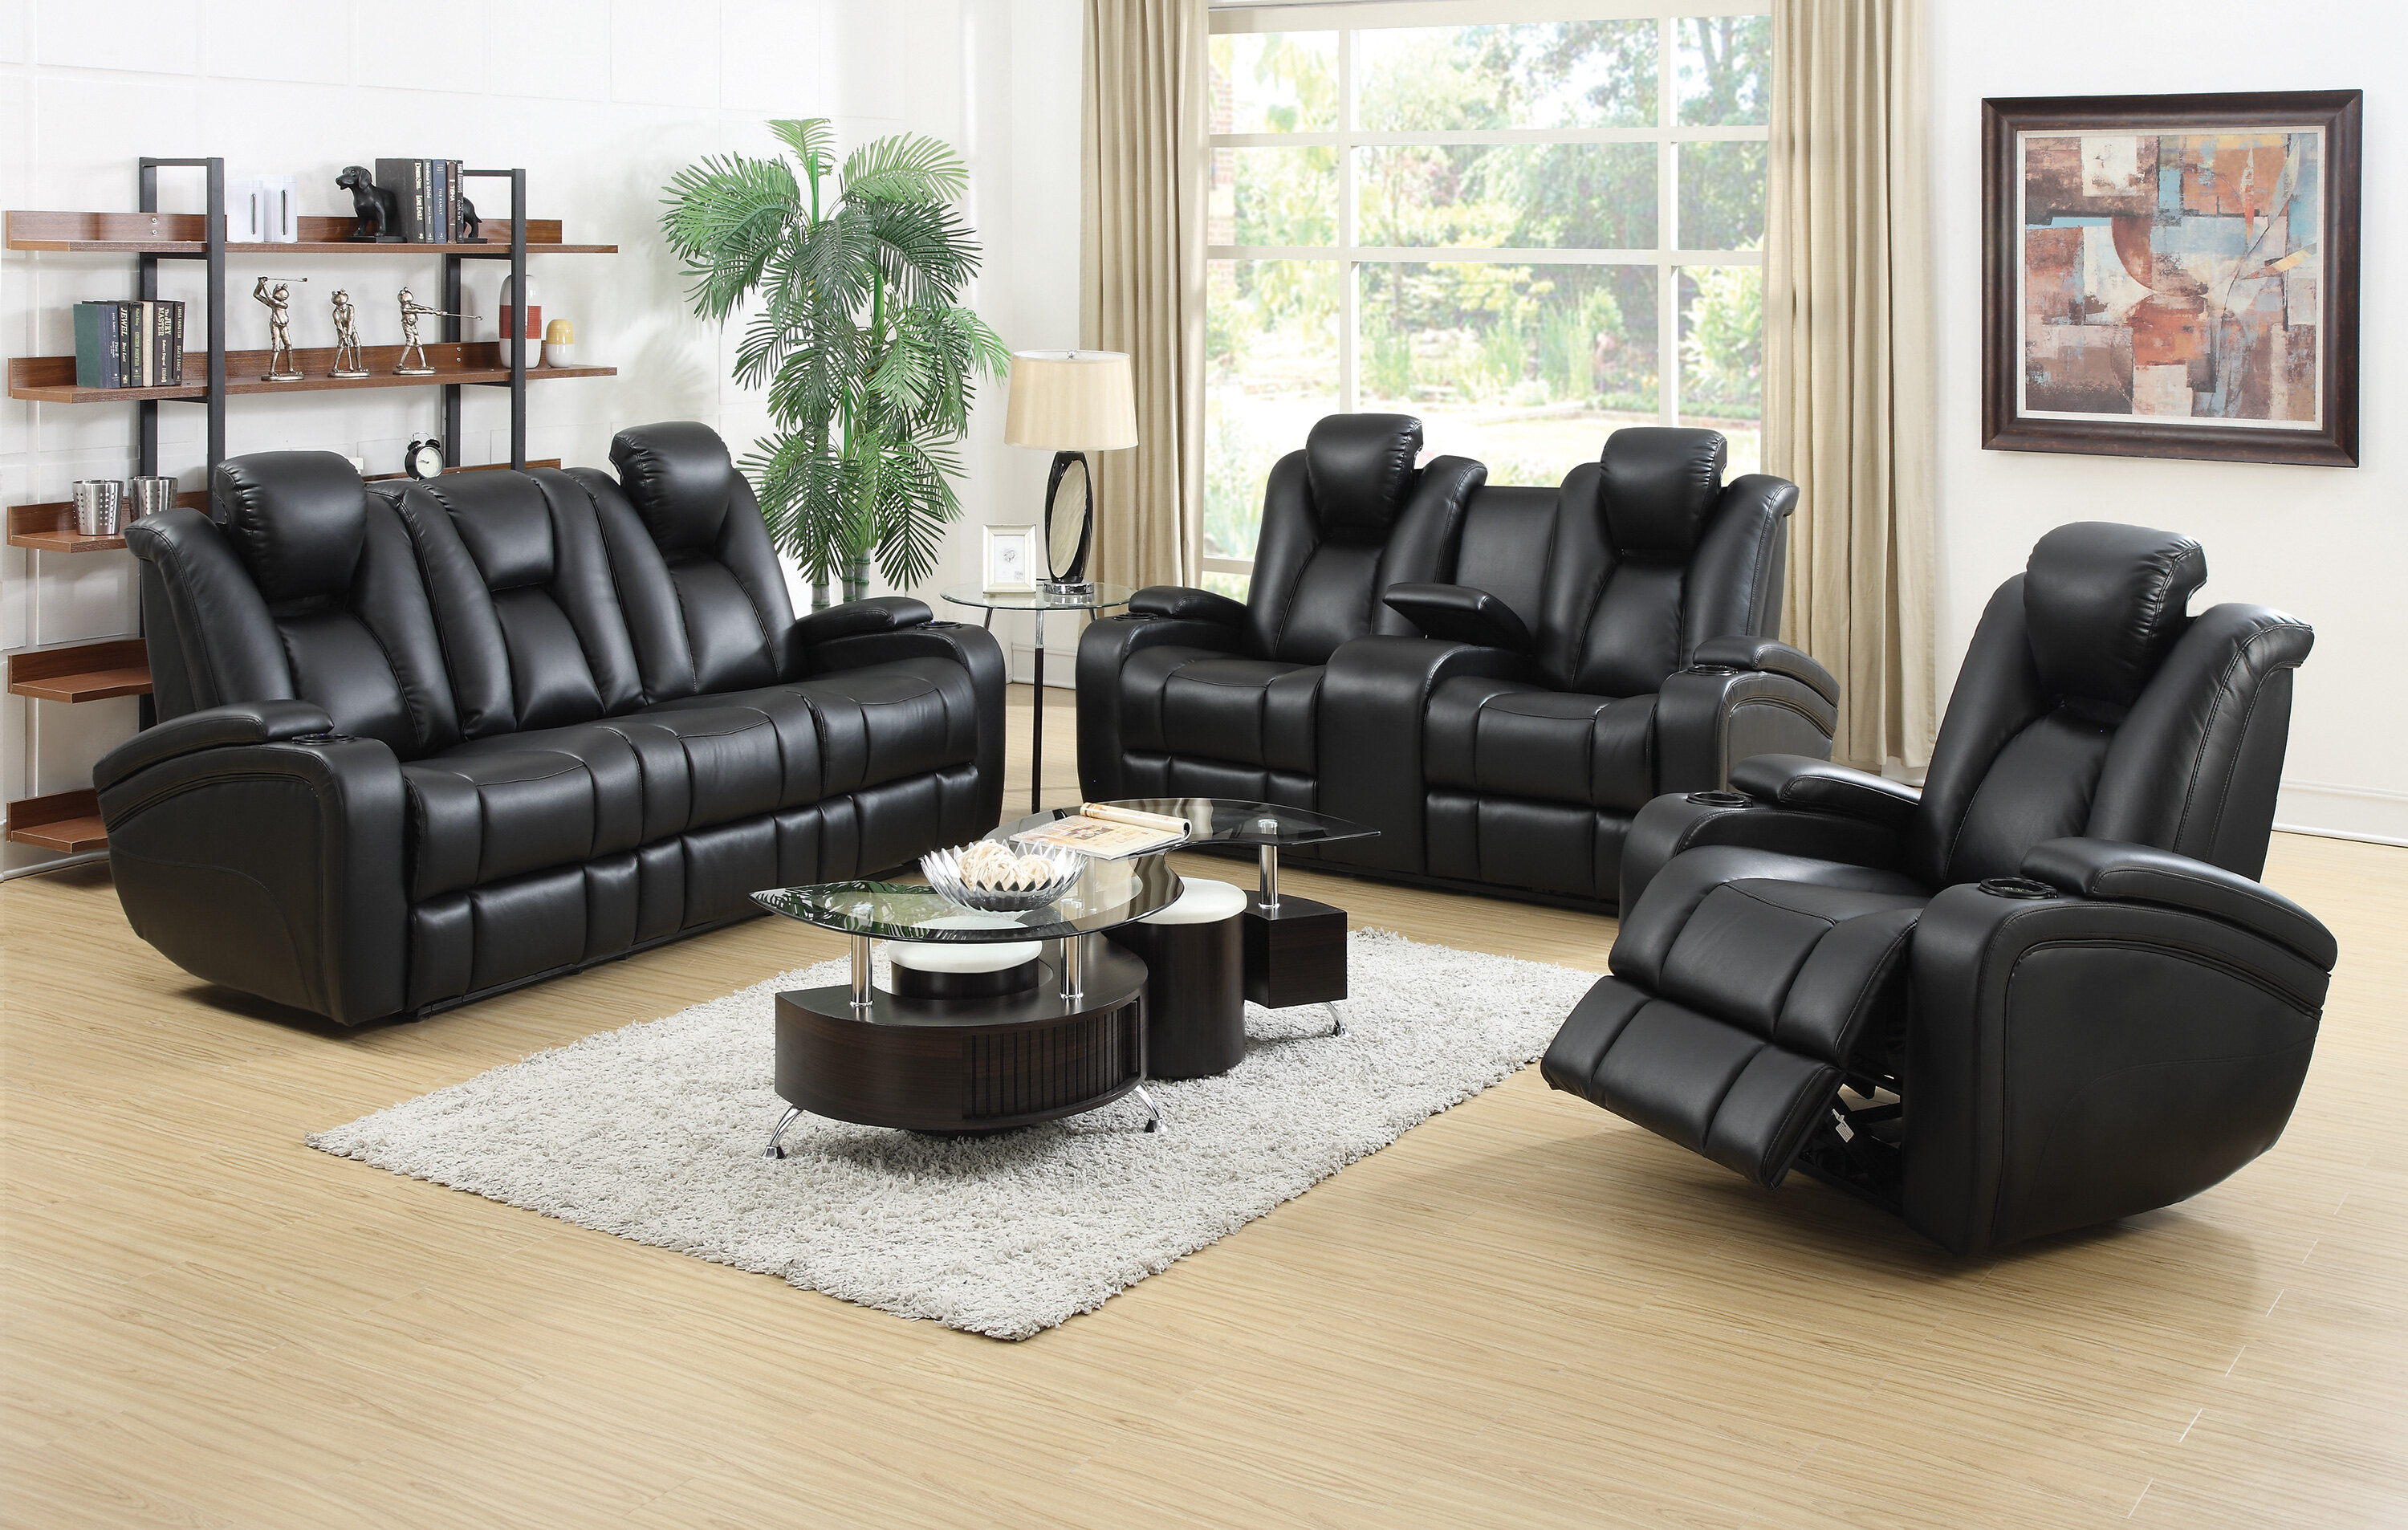 Reclining Living Room Sets You Ll Love ~ Baycliffe Reclining Sofa Reviews